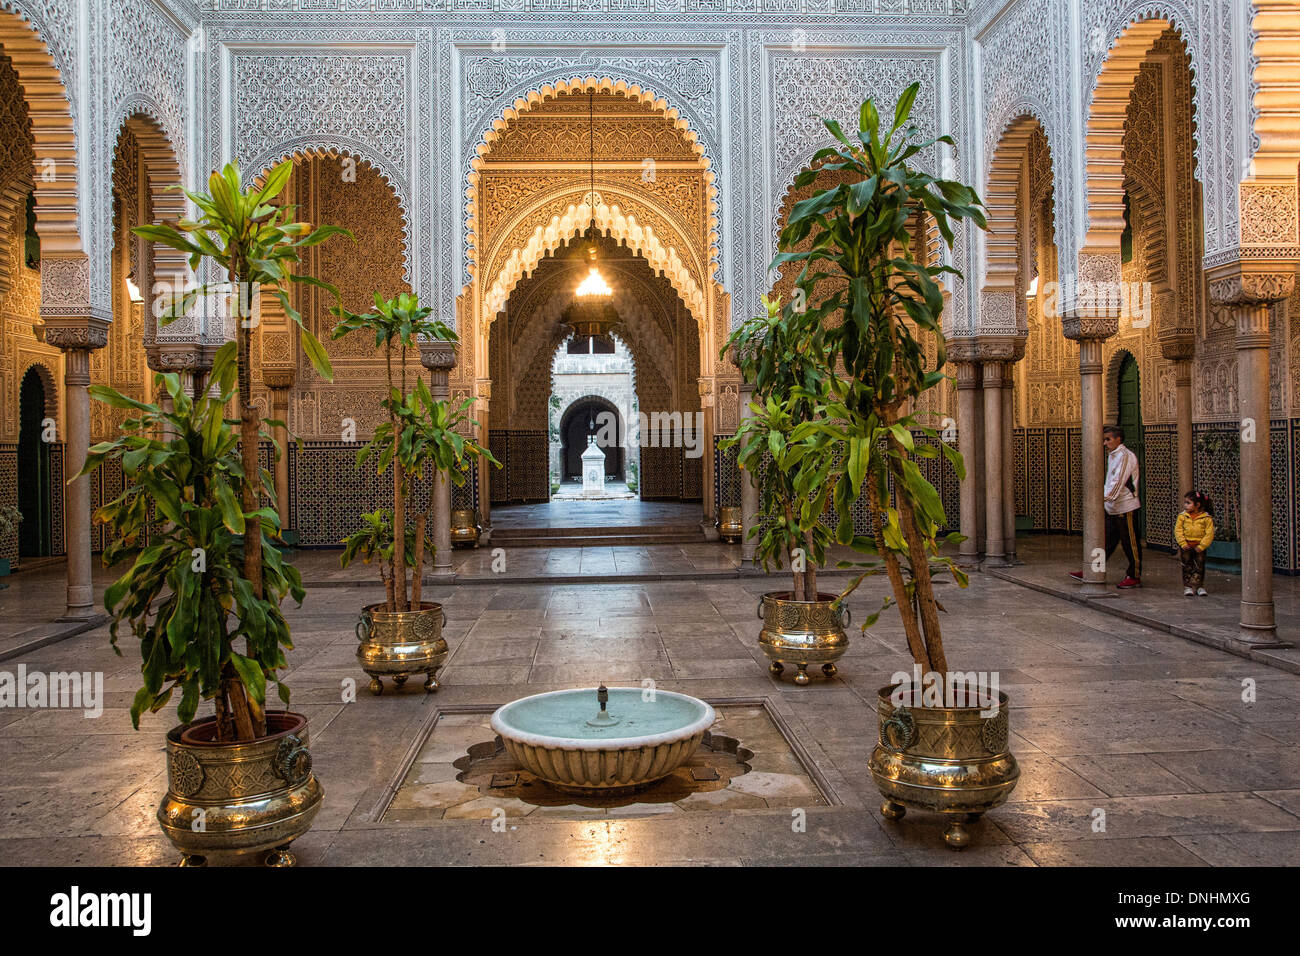 PATIO OF THE OLD MAHAKMA OF THE PACHA, FORMER MUSLIM COURT TODAY HOUSING  ONE OF THE CITYu0027S PREFECTURES, THE HABOUS QUARTER, THE NEW MEDINA OF  CASABLANCA, ...